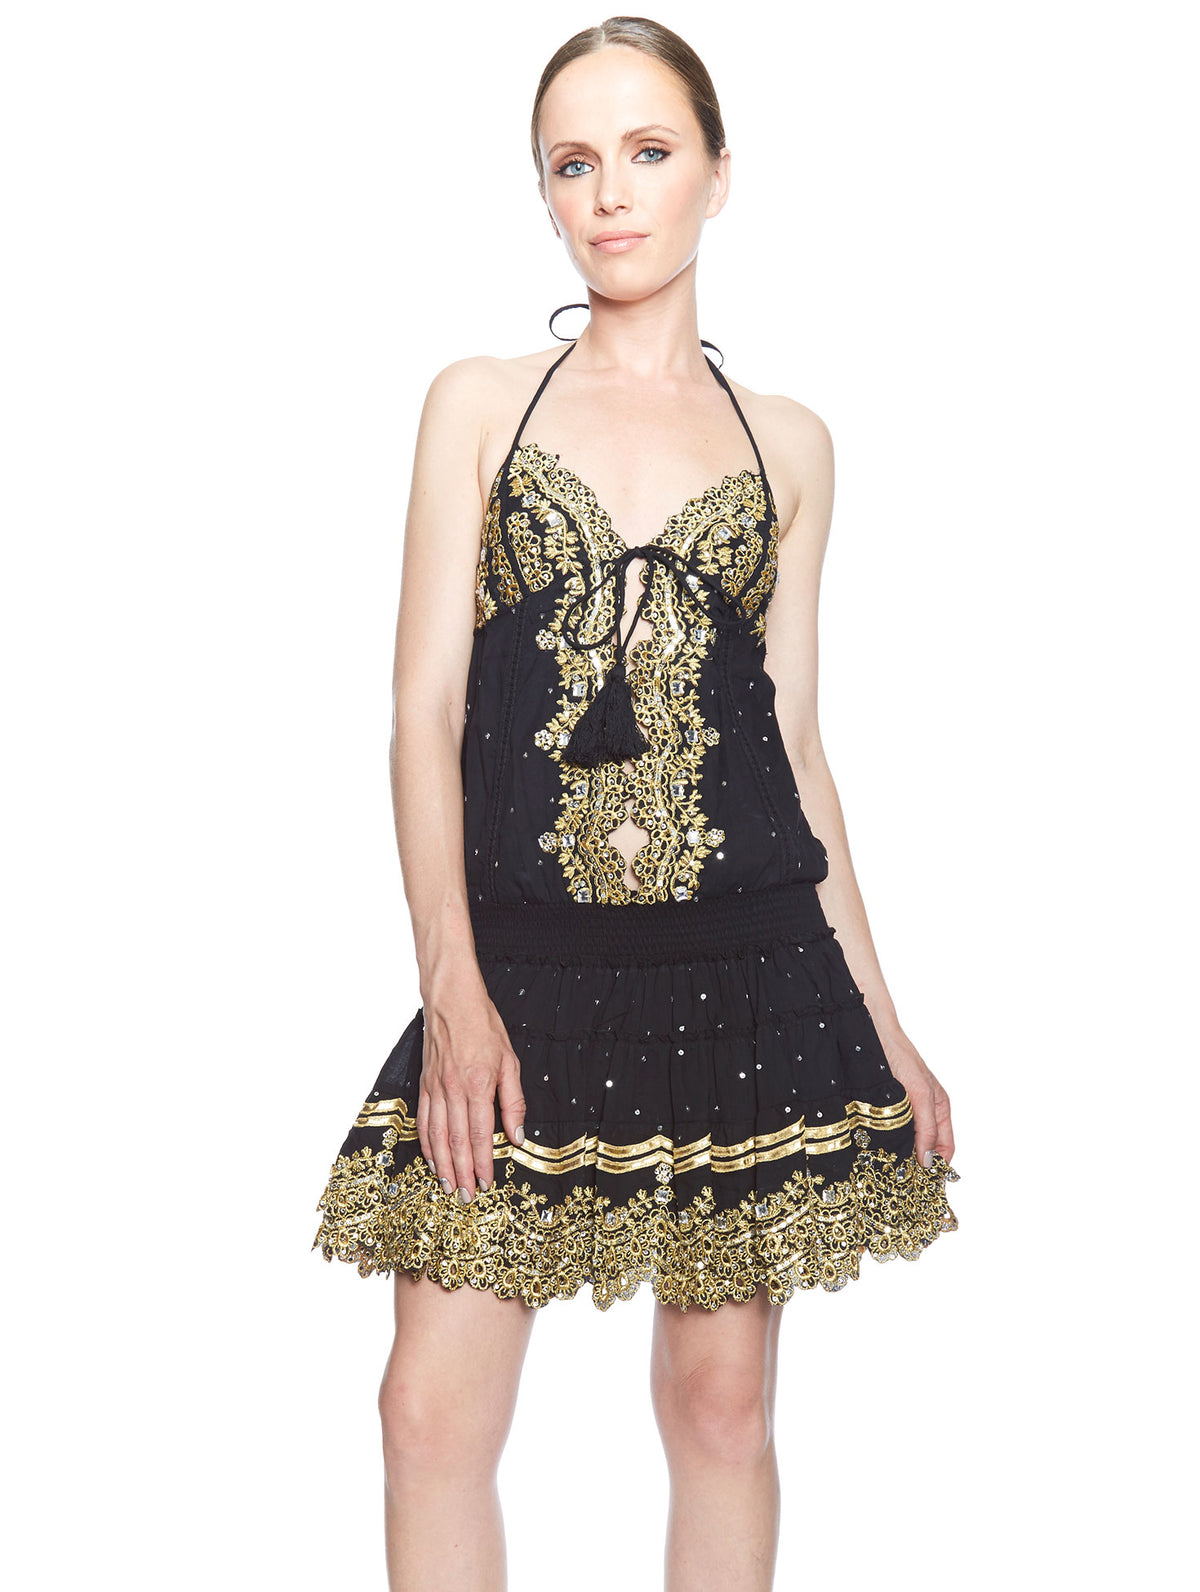 Salinas Dress Black & Gold Halter Dress